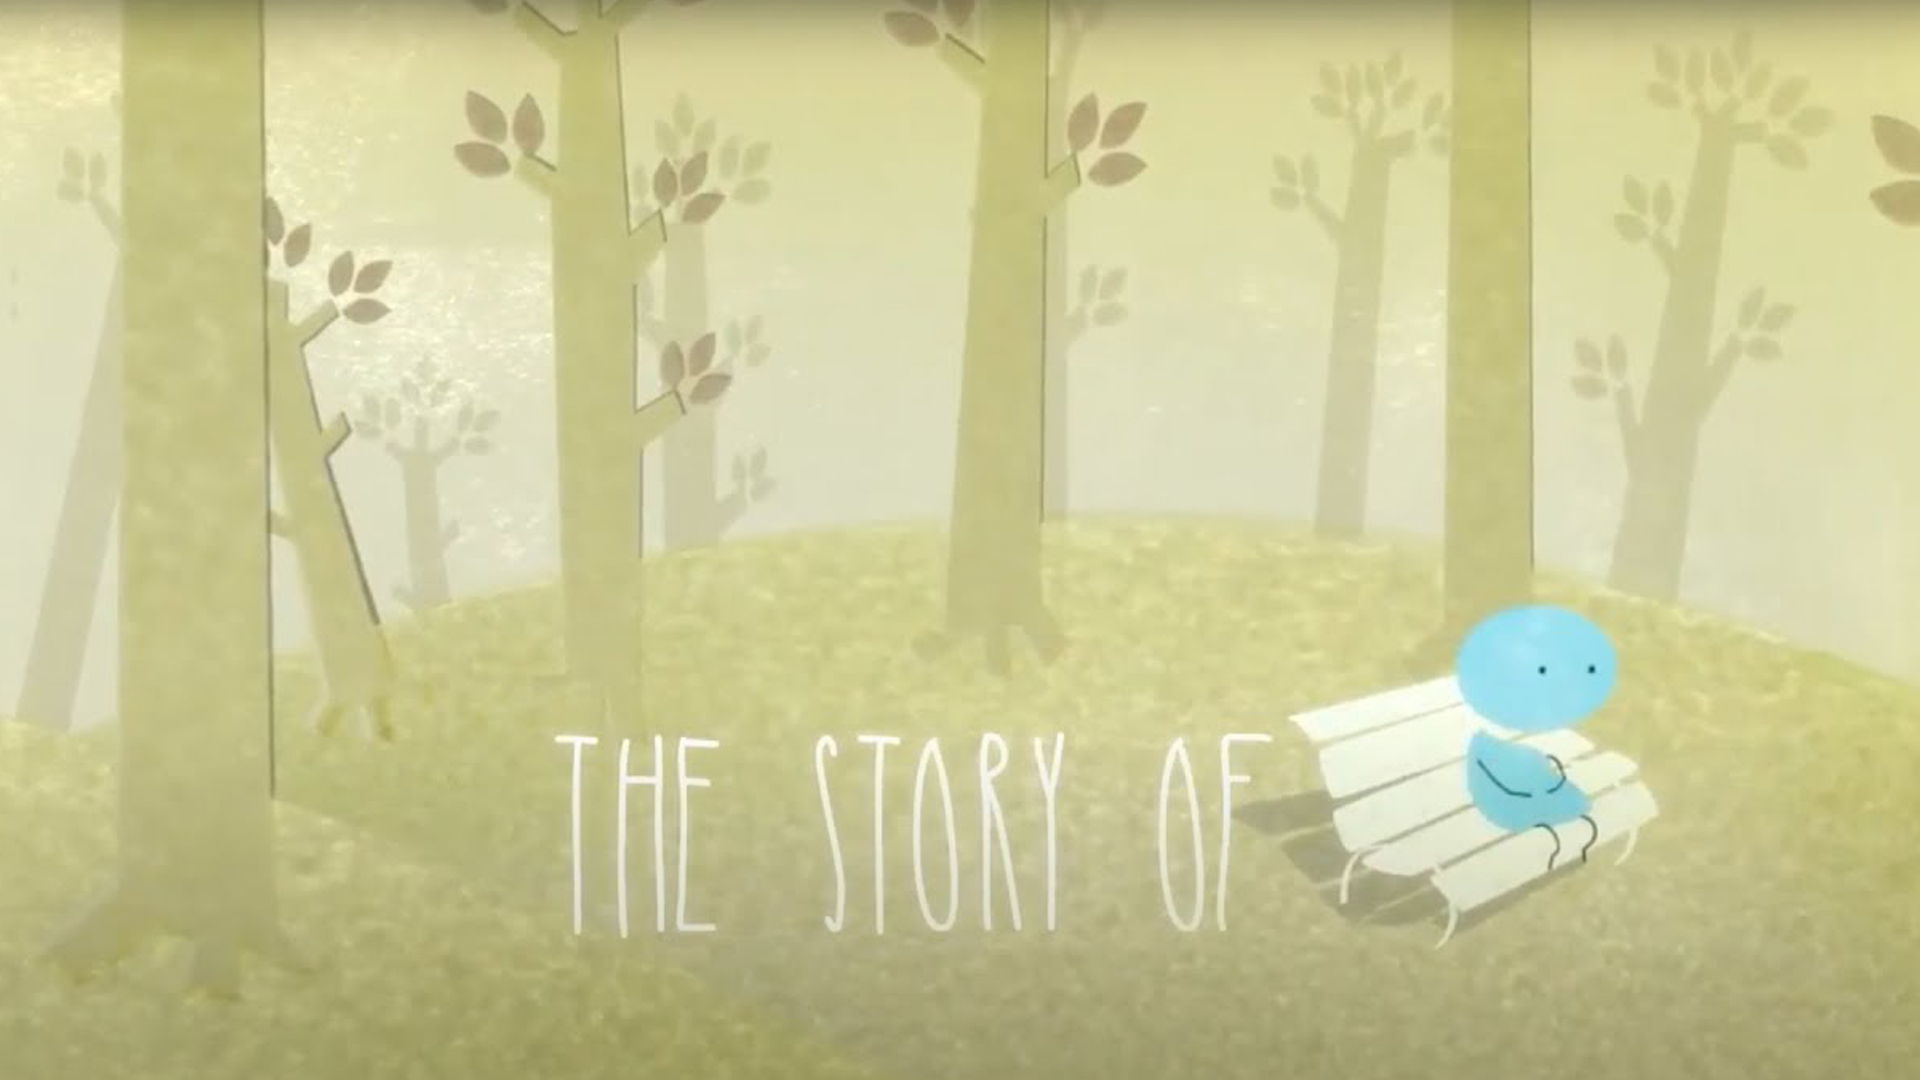 The Story of i